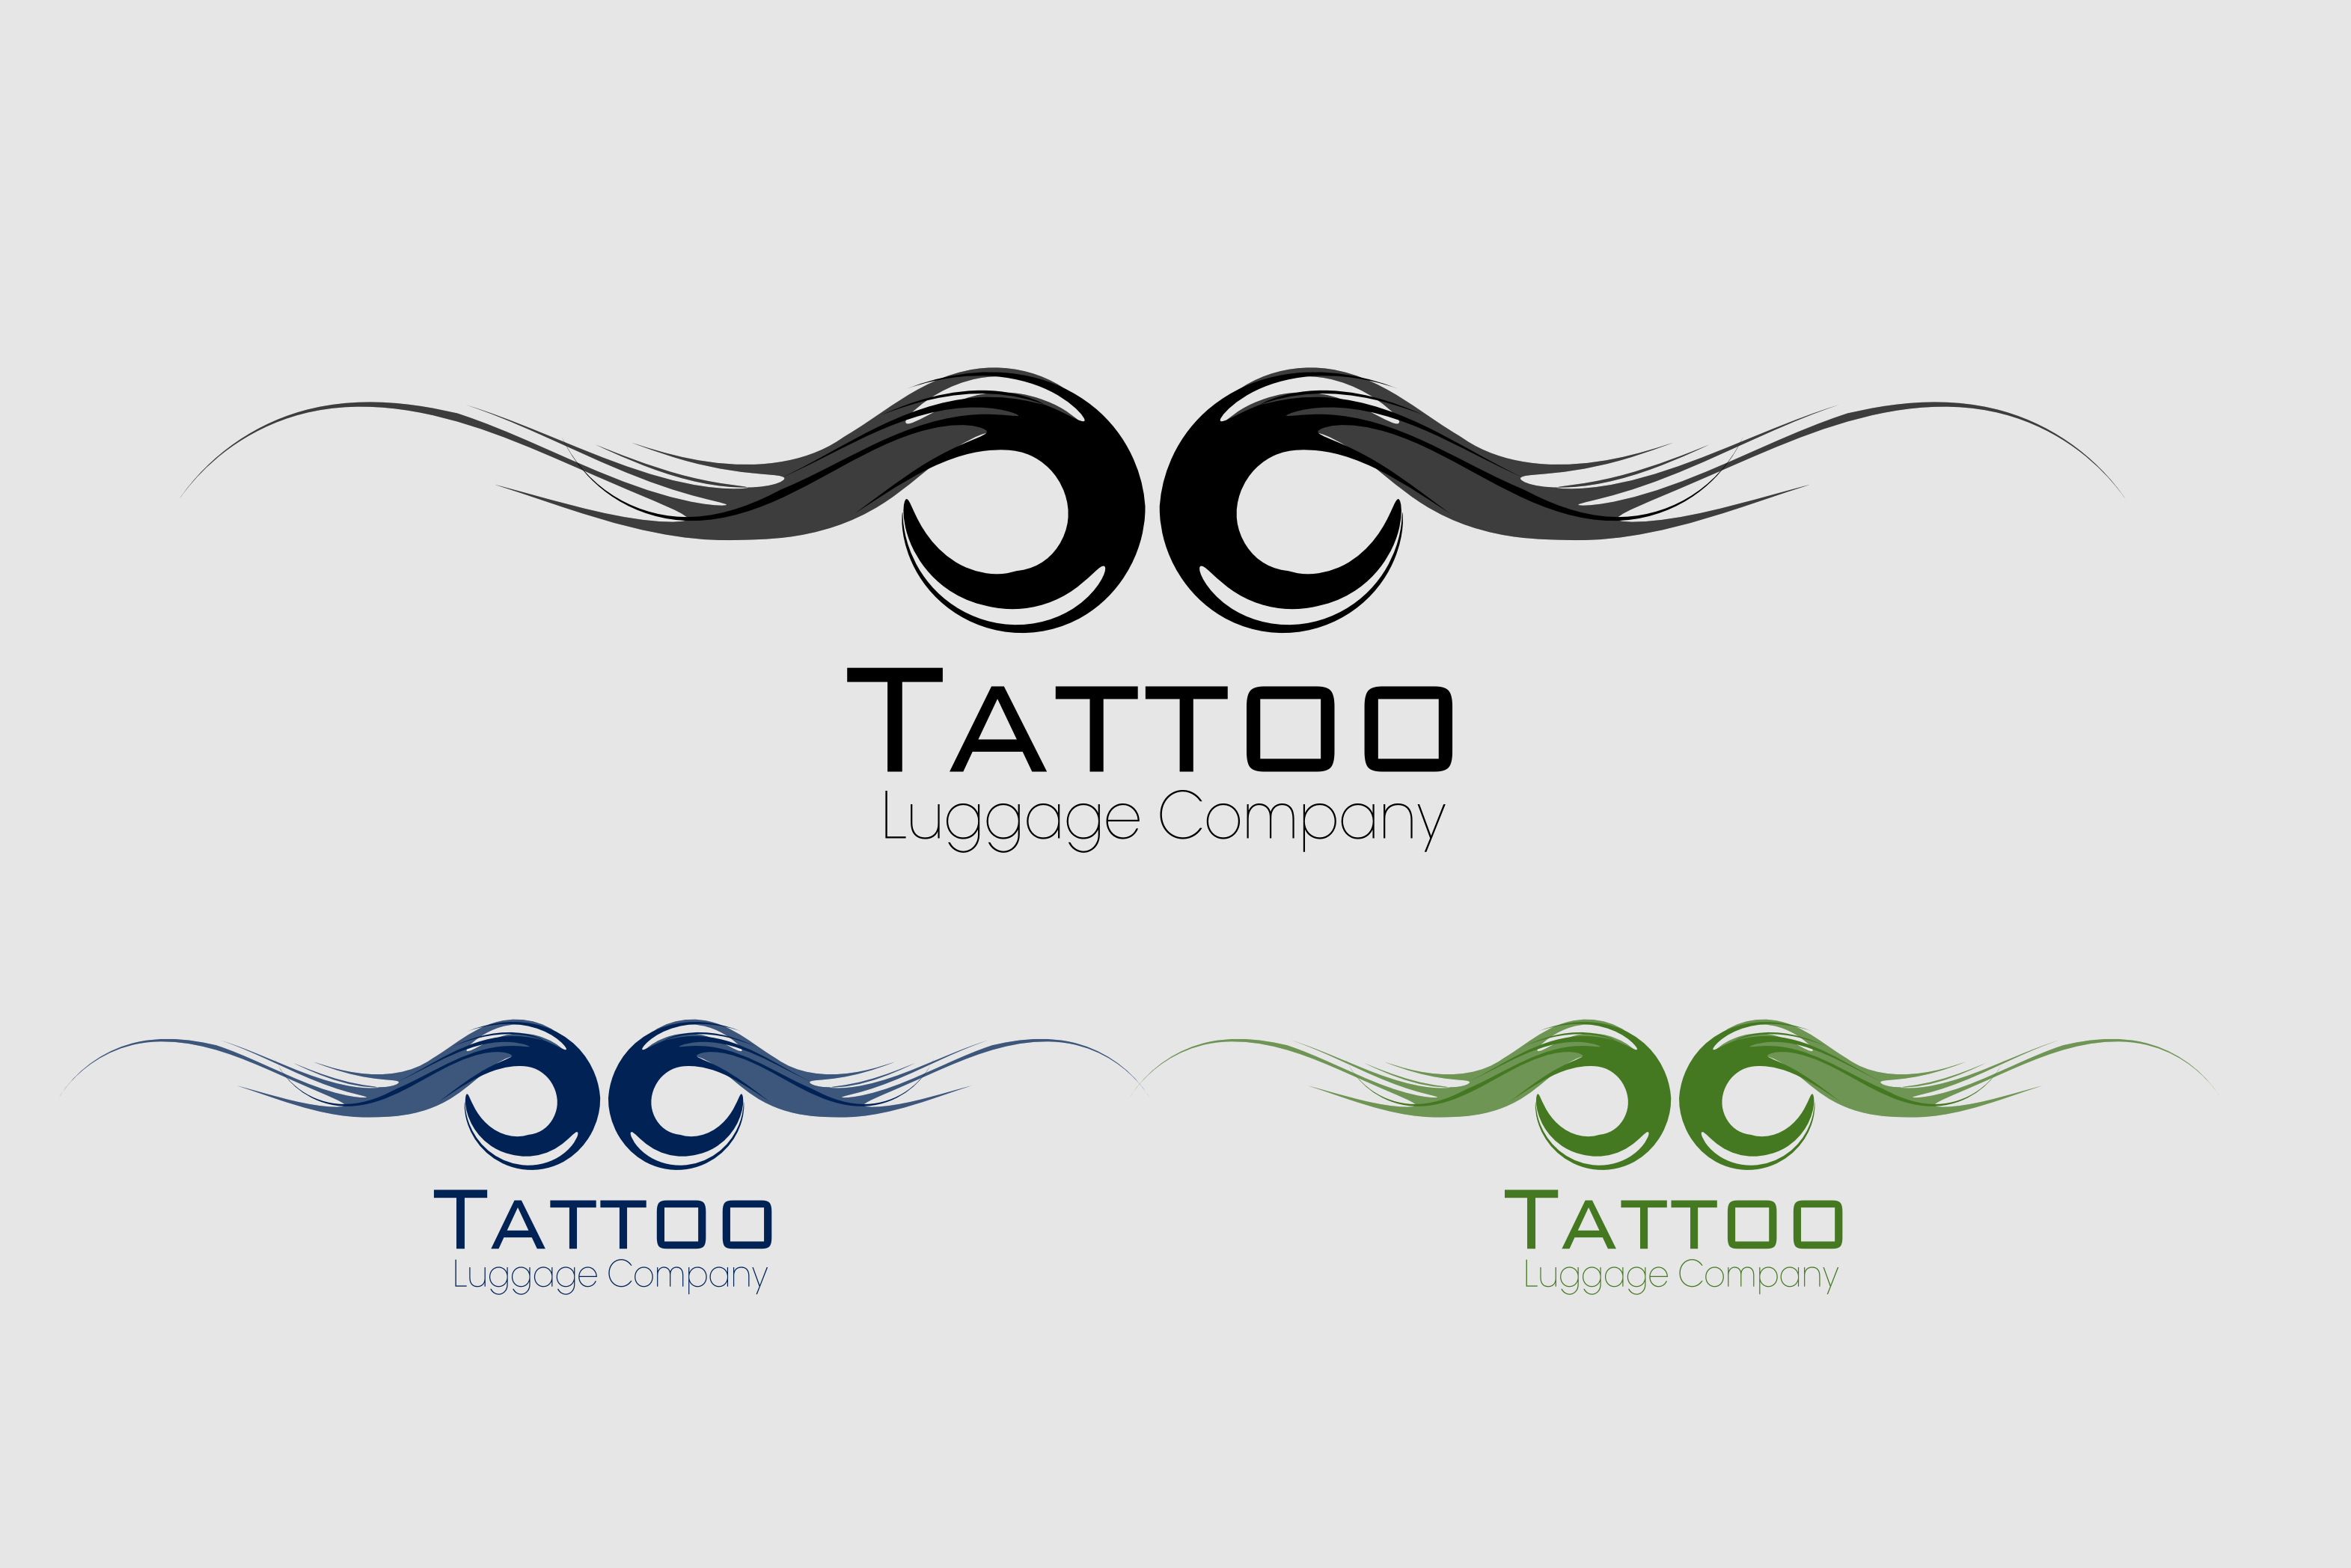 Logo Design by Arindam Khanda - Entry No. 59 in the Logo Design Contest Artistic Logo Design for Tattoo Luggage Company.